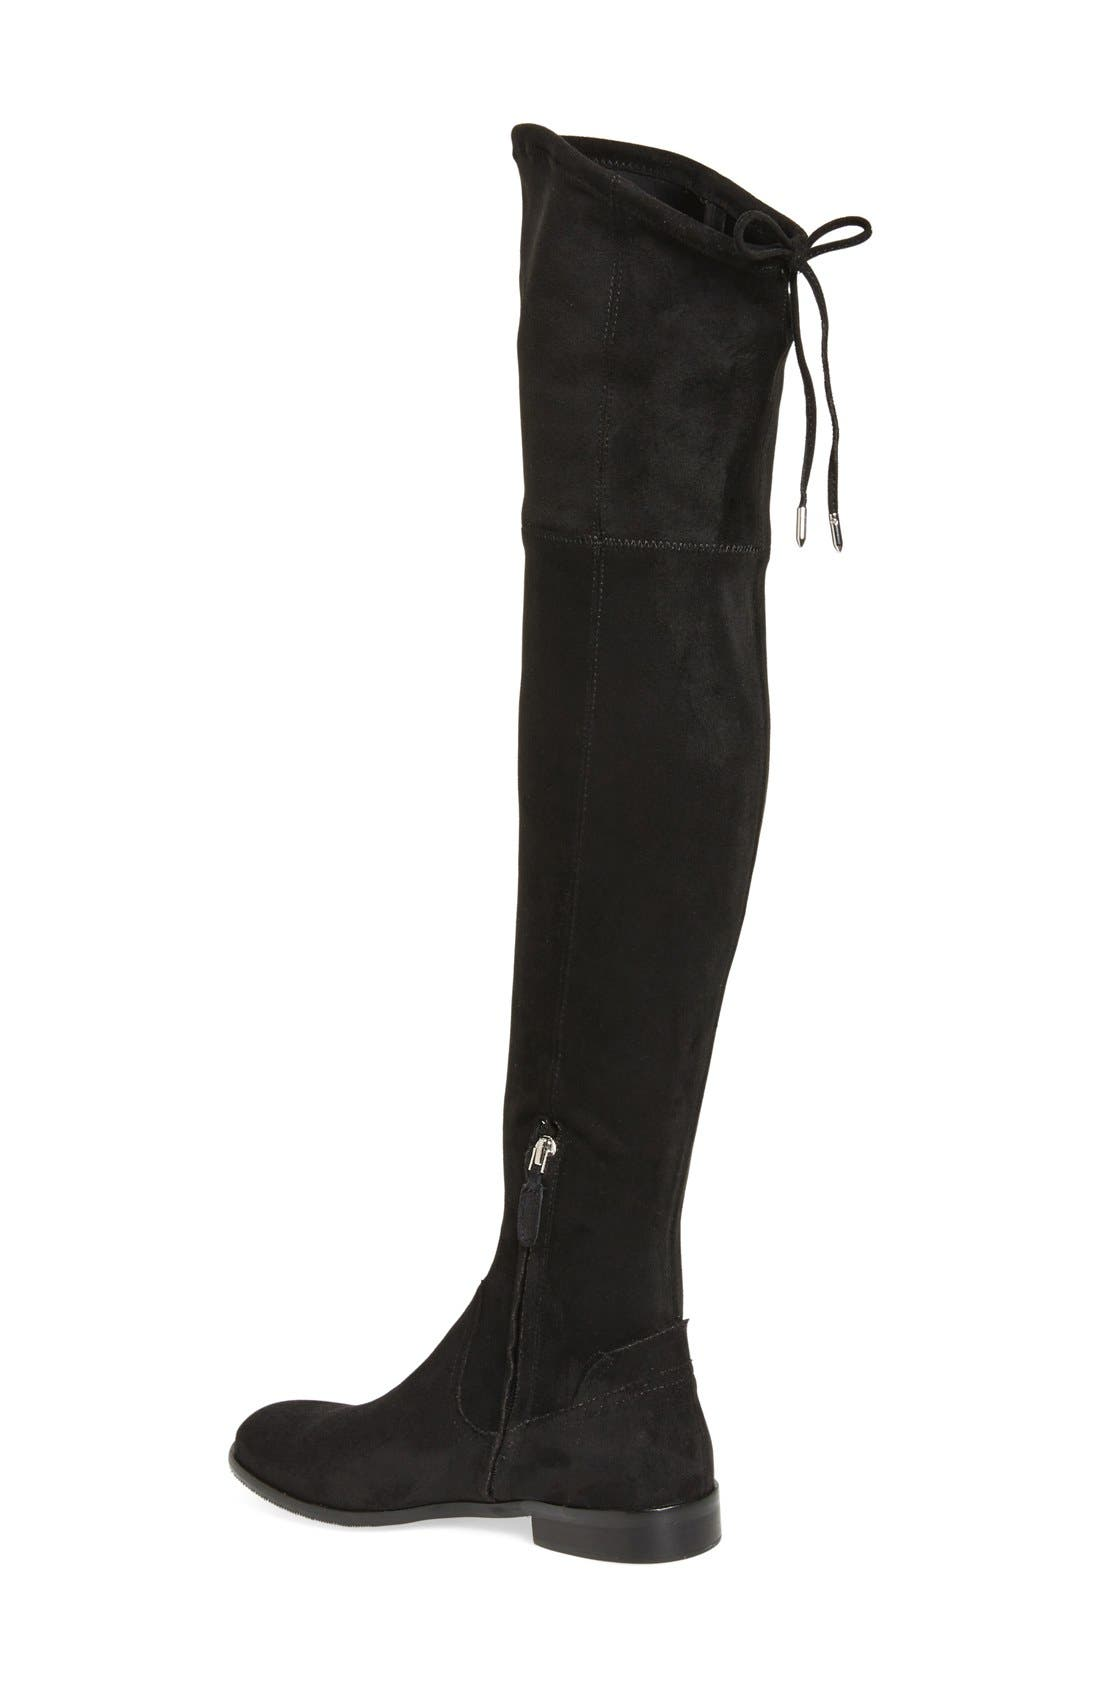 'Neely' Over the Knee Boot,                             Alternate thumbnail 2, color,                             Black Stretch Suede